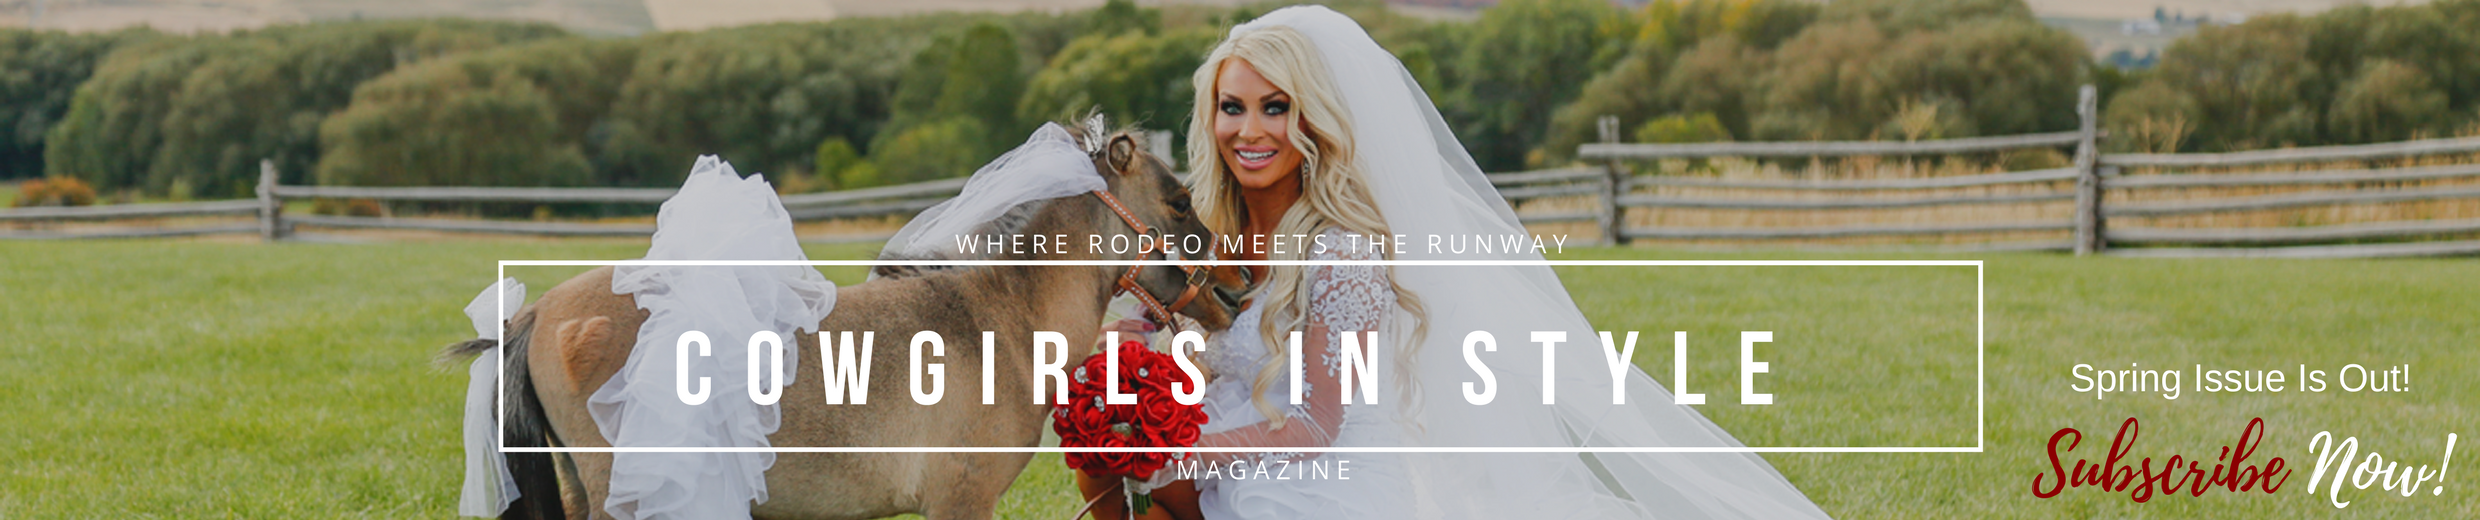 Subscribe - Cowgirls In Style Magazine